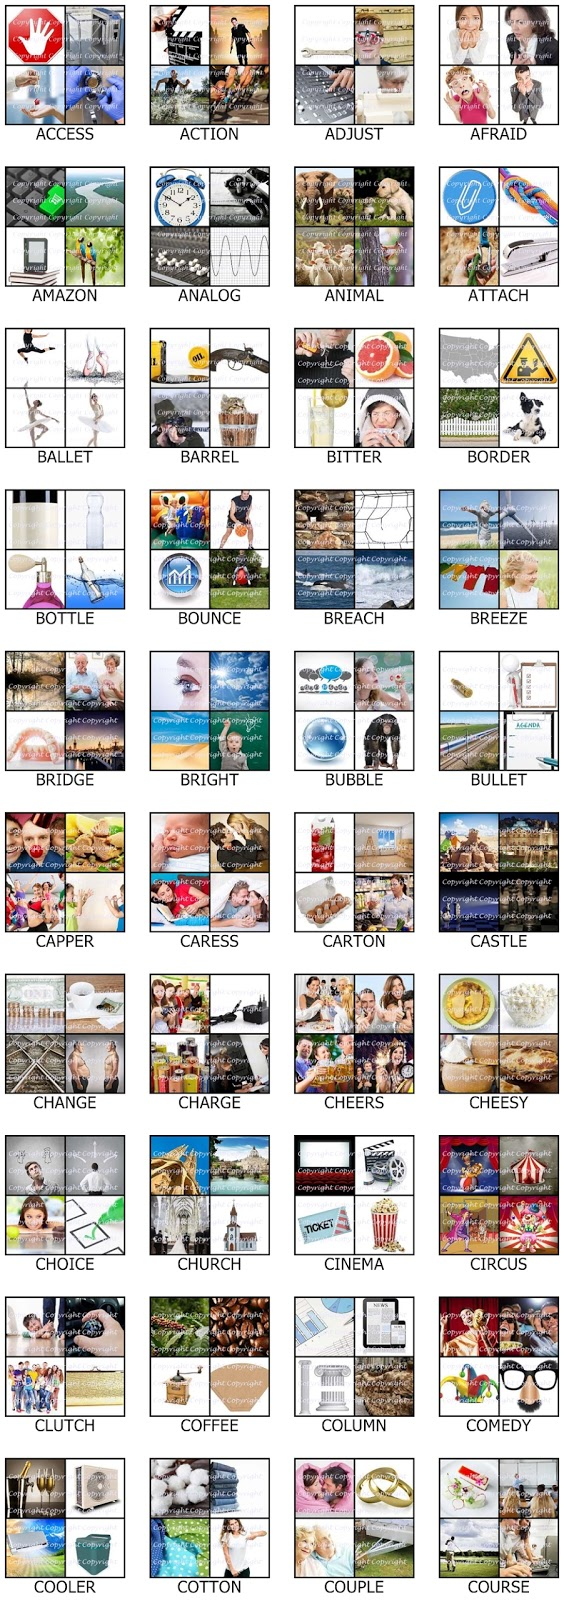 Www 4 pics 1 word 6 letters images letter format formal sample 4 pics and 1 word answers 6 letters images letter format formal sample 4 pics 1 expocarfo Choice Image